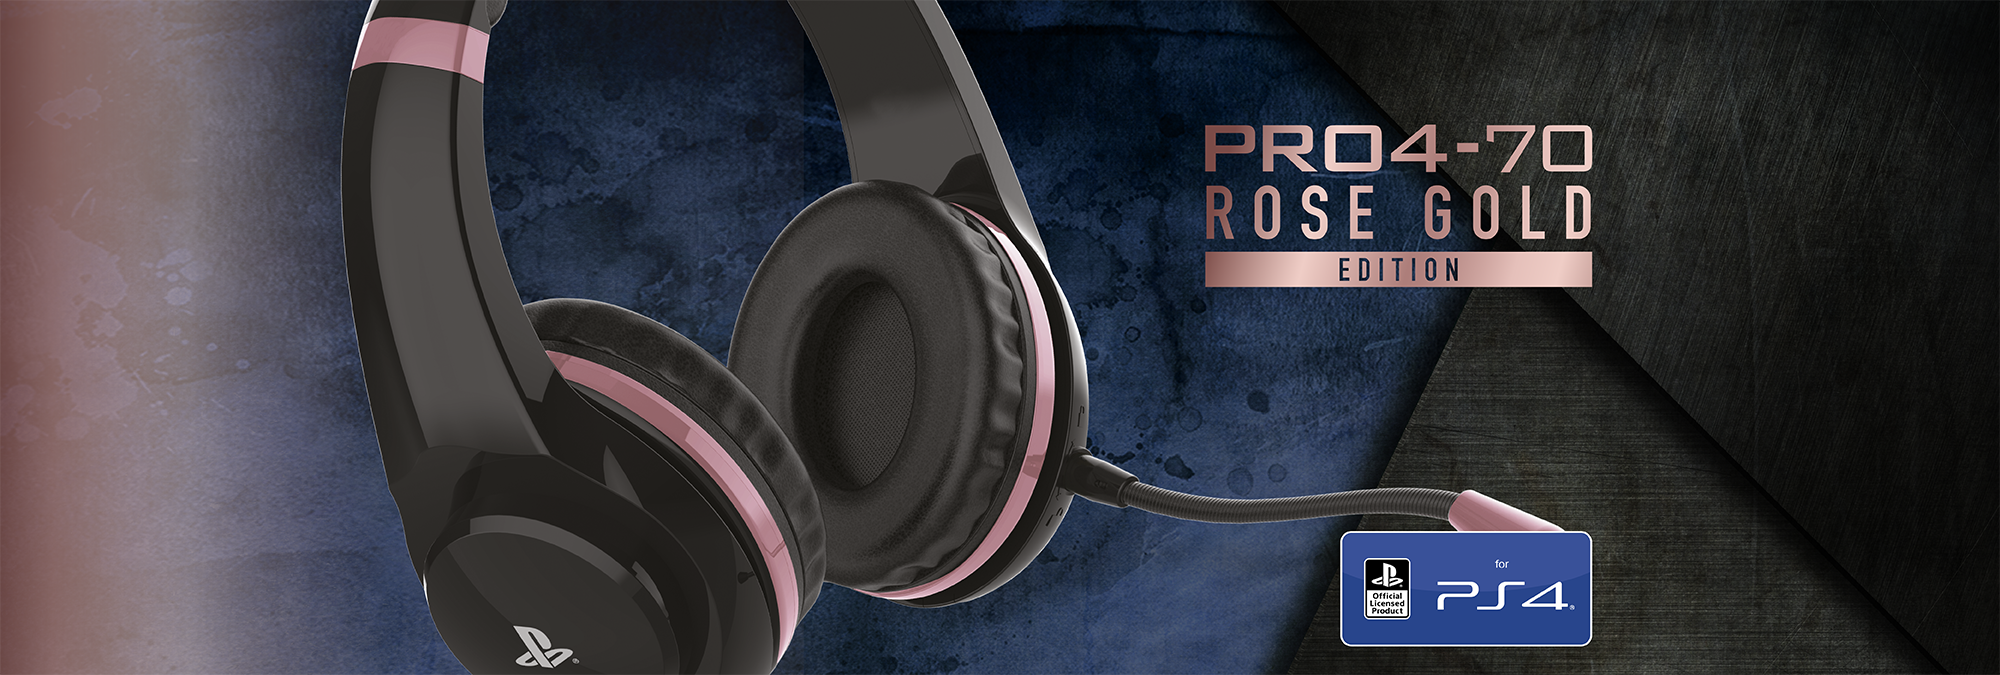 PRO4-70 ROSE GOLD EDITION